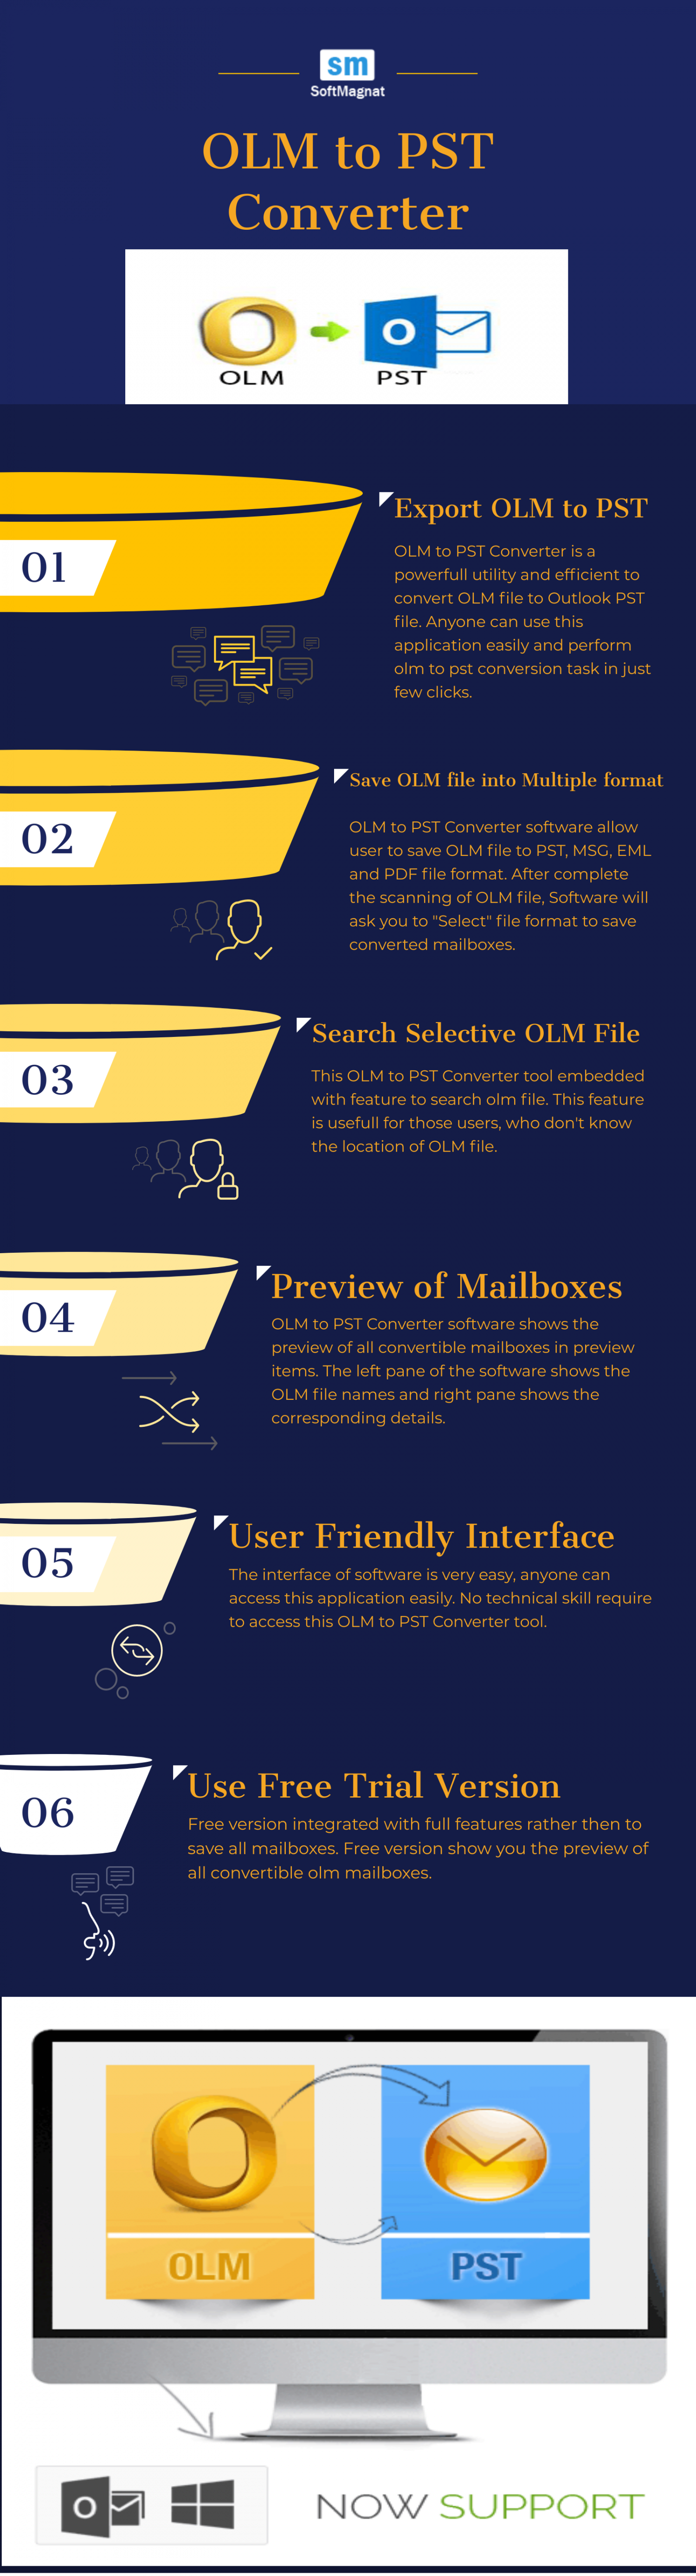 How to Convert OLM to PST Manually   OLM to PST Converter Infographic